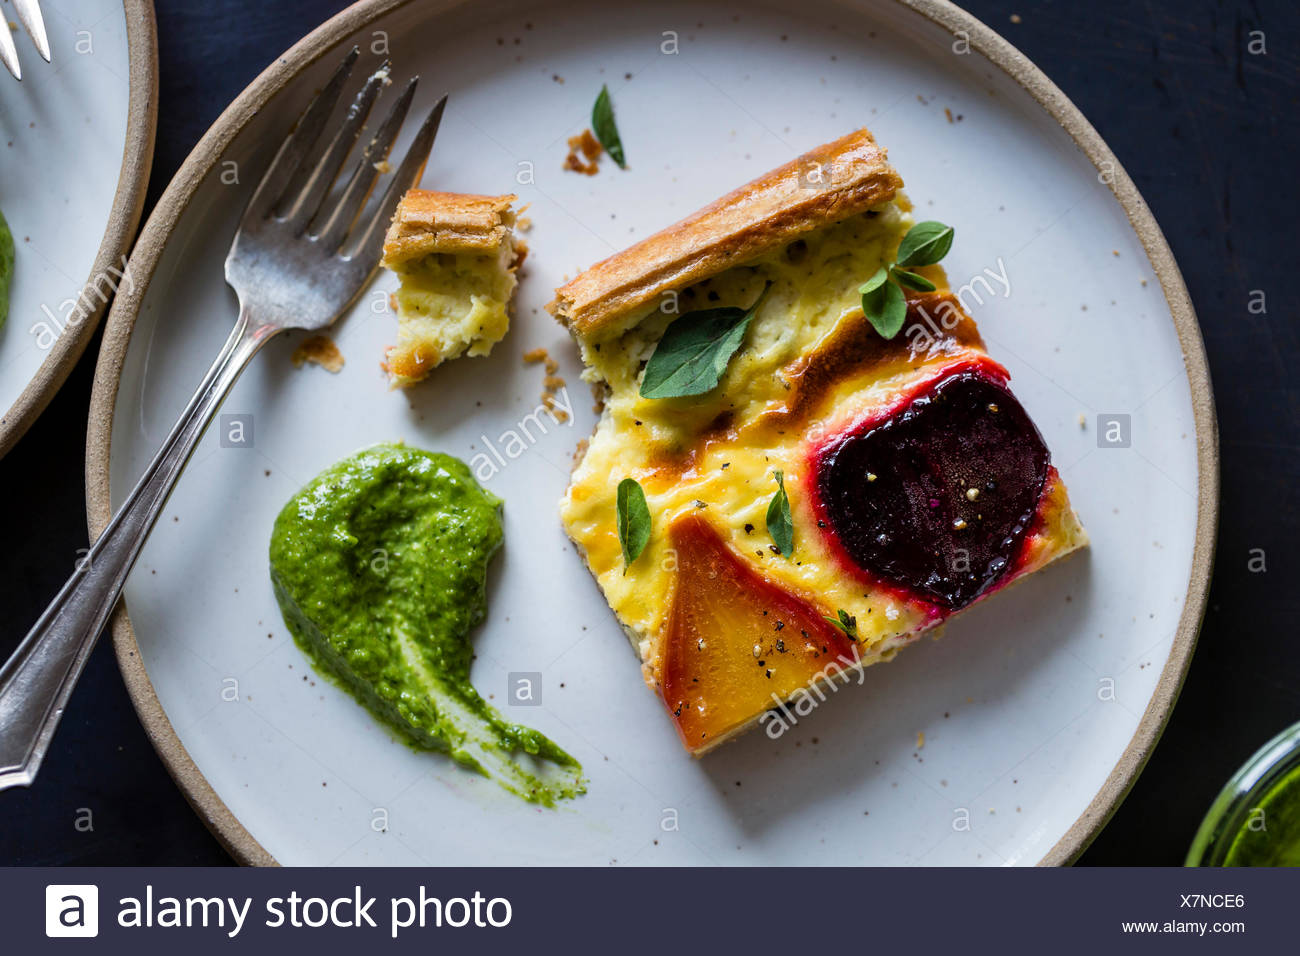 Beetroot ricotta cheese tart with beet greens pesto. Stock Photo